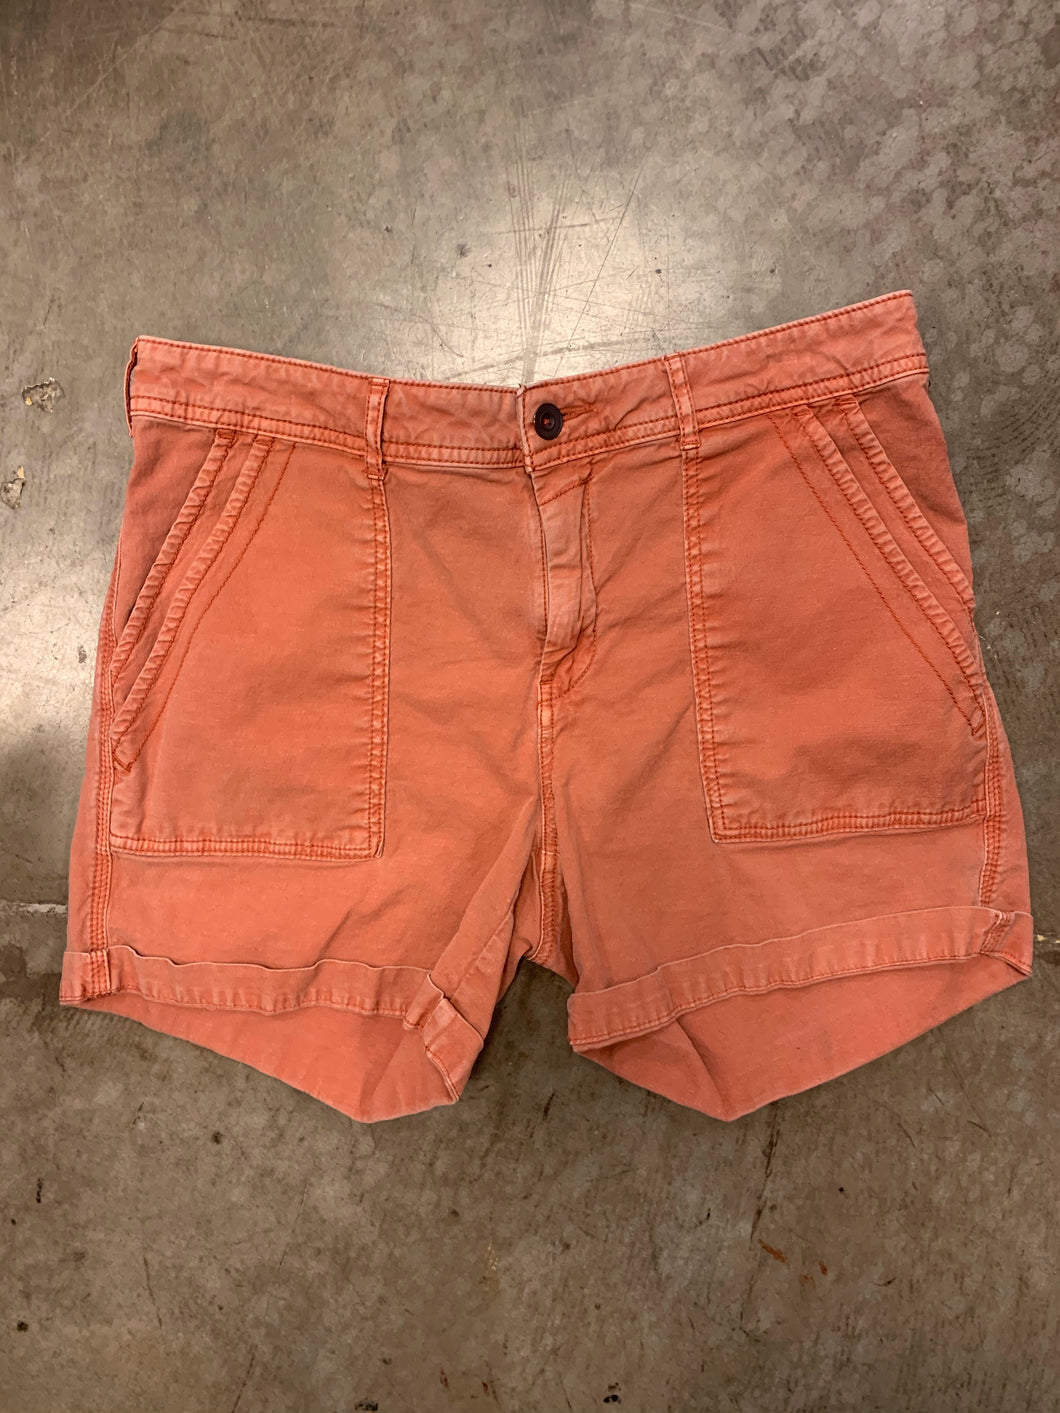 Anthropologie- size 29